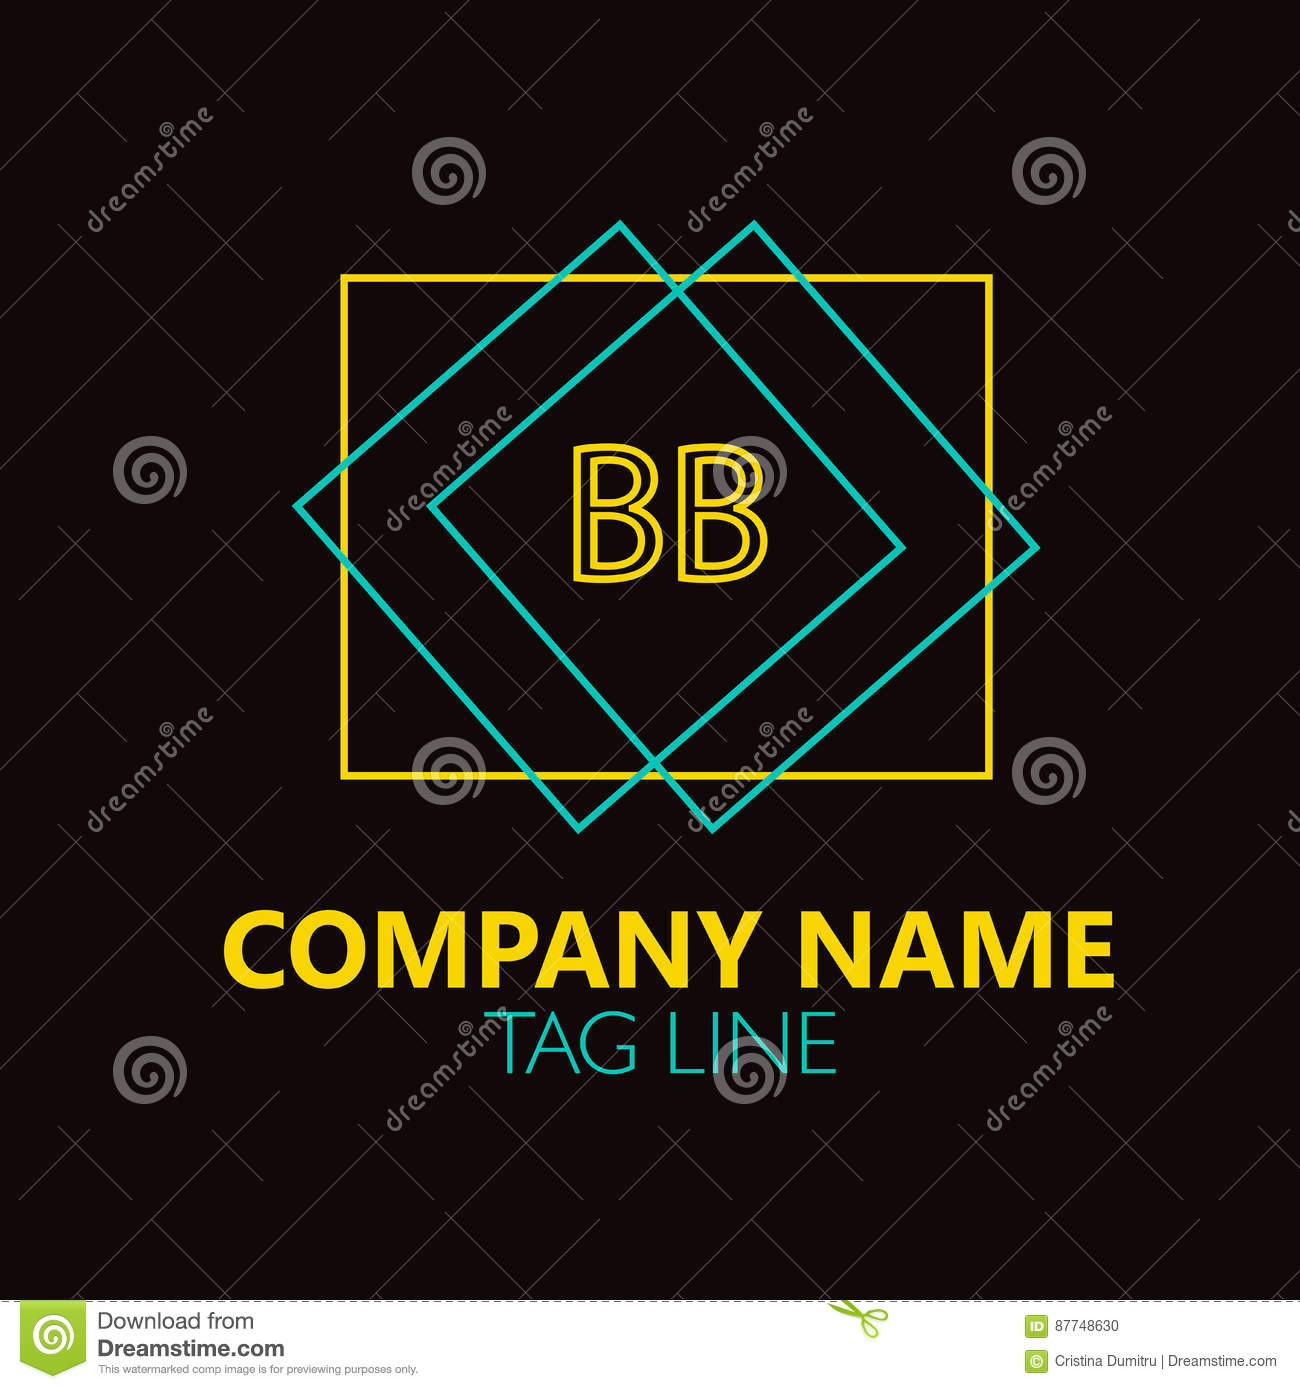 Bb Letter Logo Design Stock Vector Illustration Of Internet 87748630